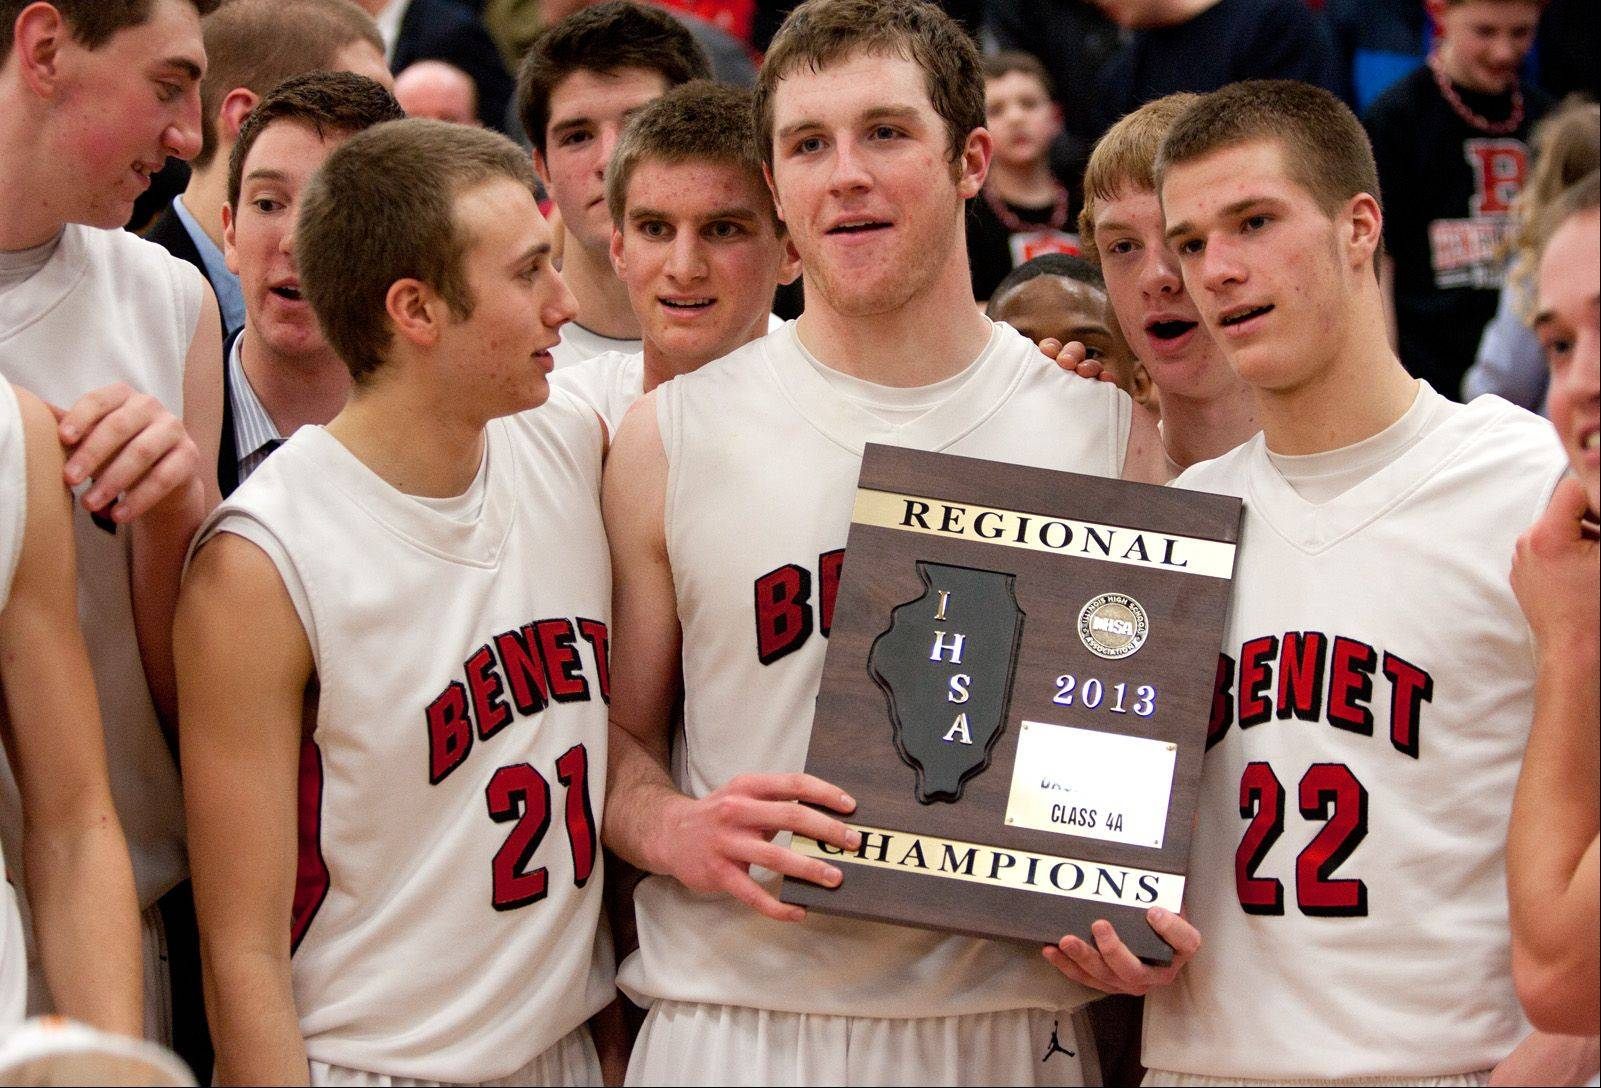 Benet's Pat McInerney holds a regional championship plaque after beating Naperville Central.